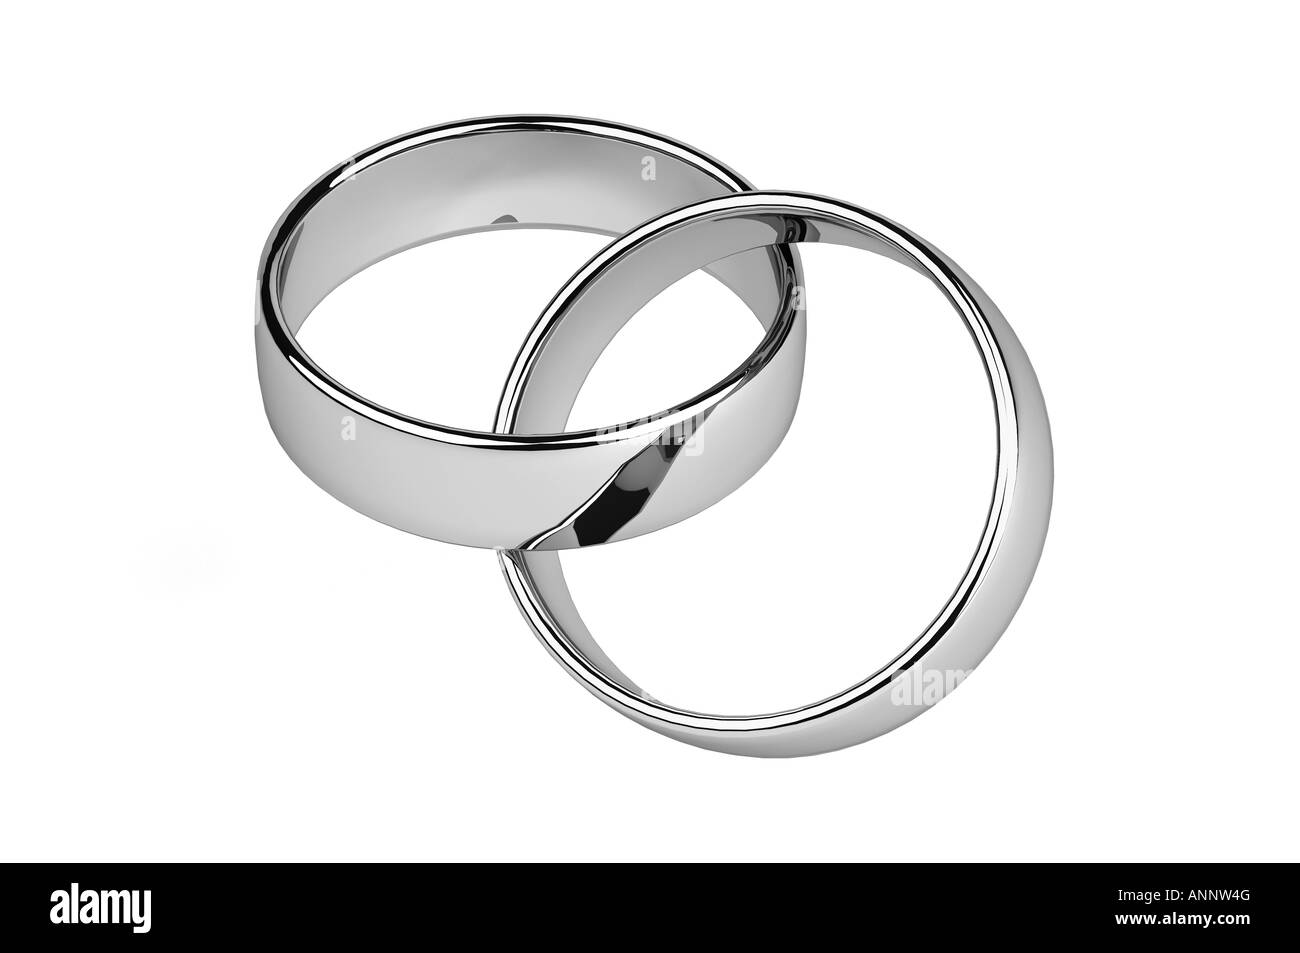 Interlocked silver wedding rings - Stock Image